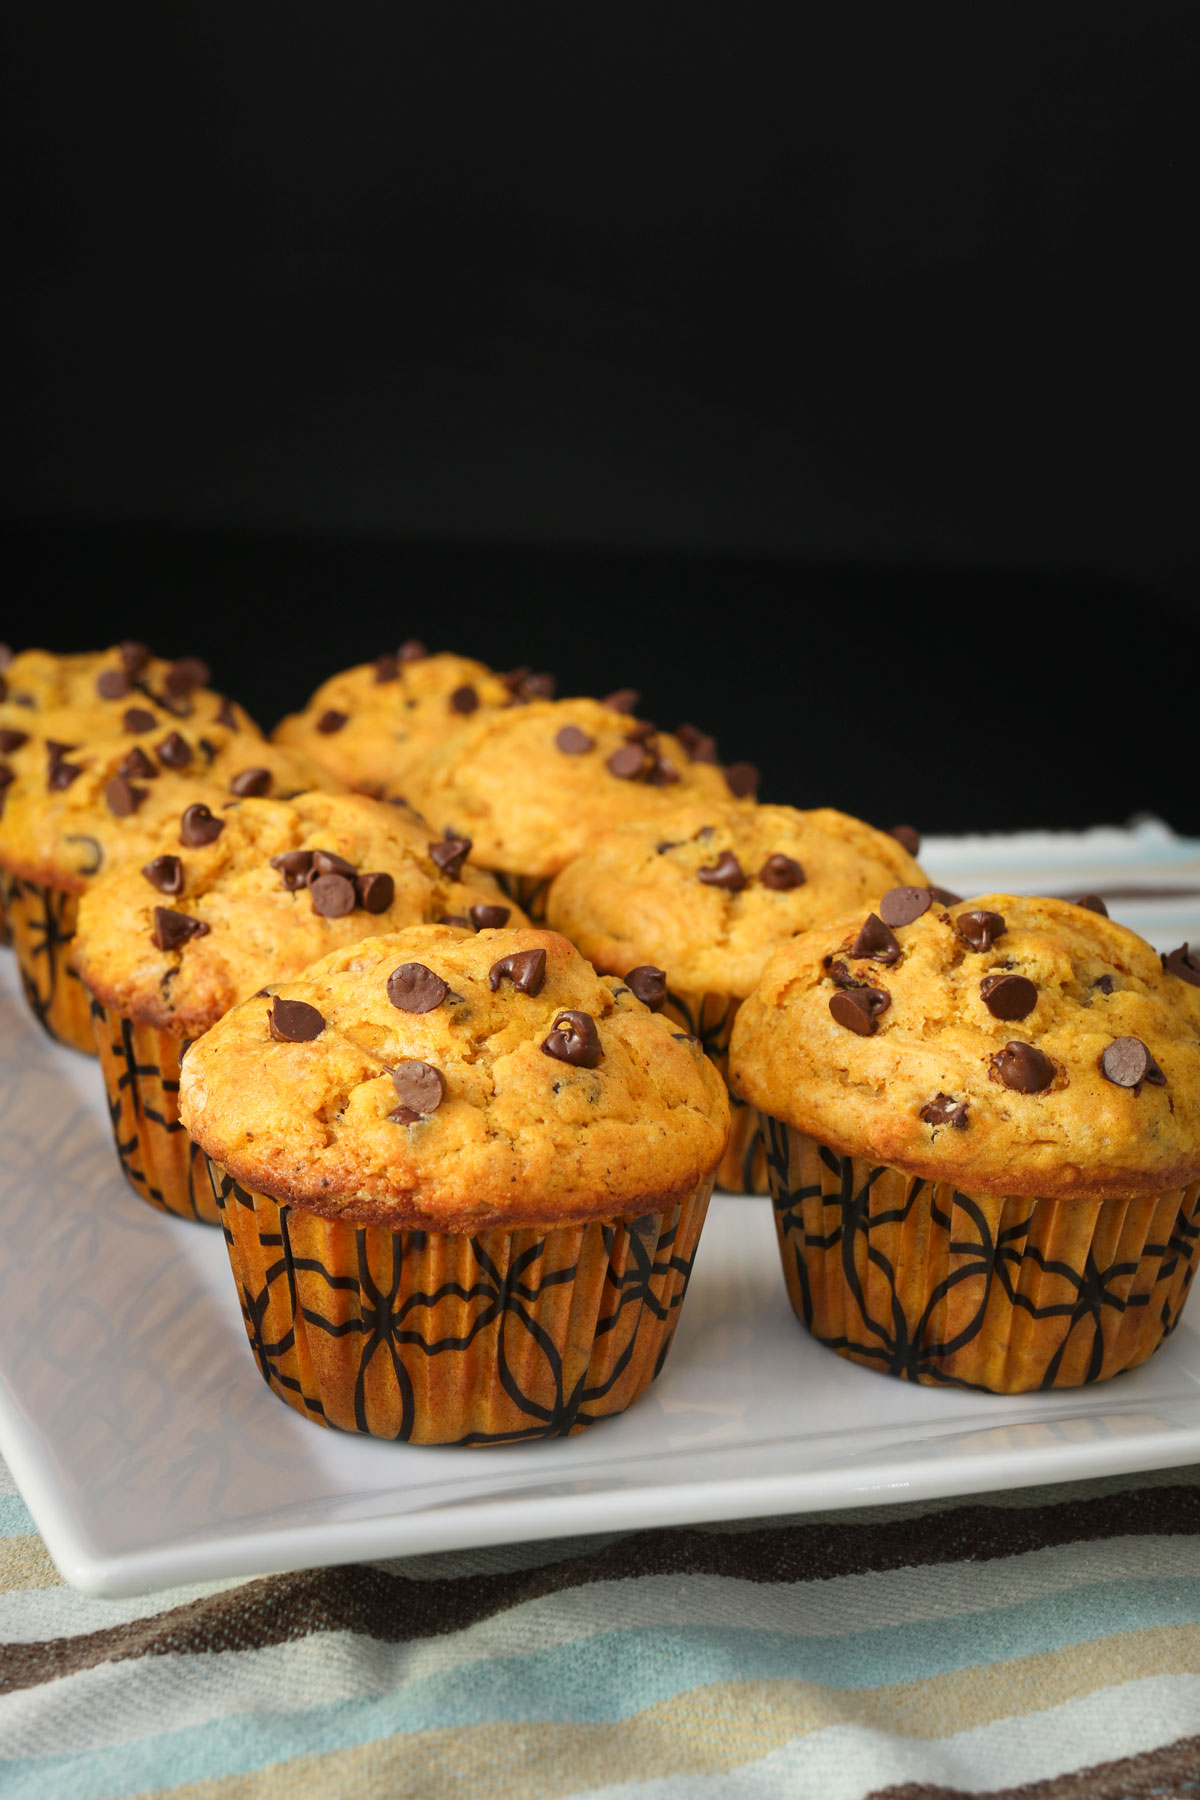 pumpkin muffins lined up on a white serving tray on a blue striped cloth.